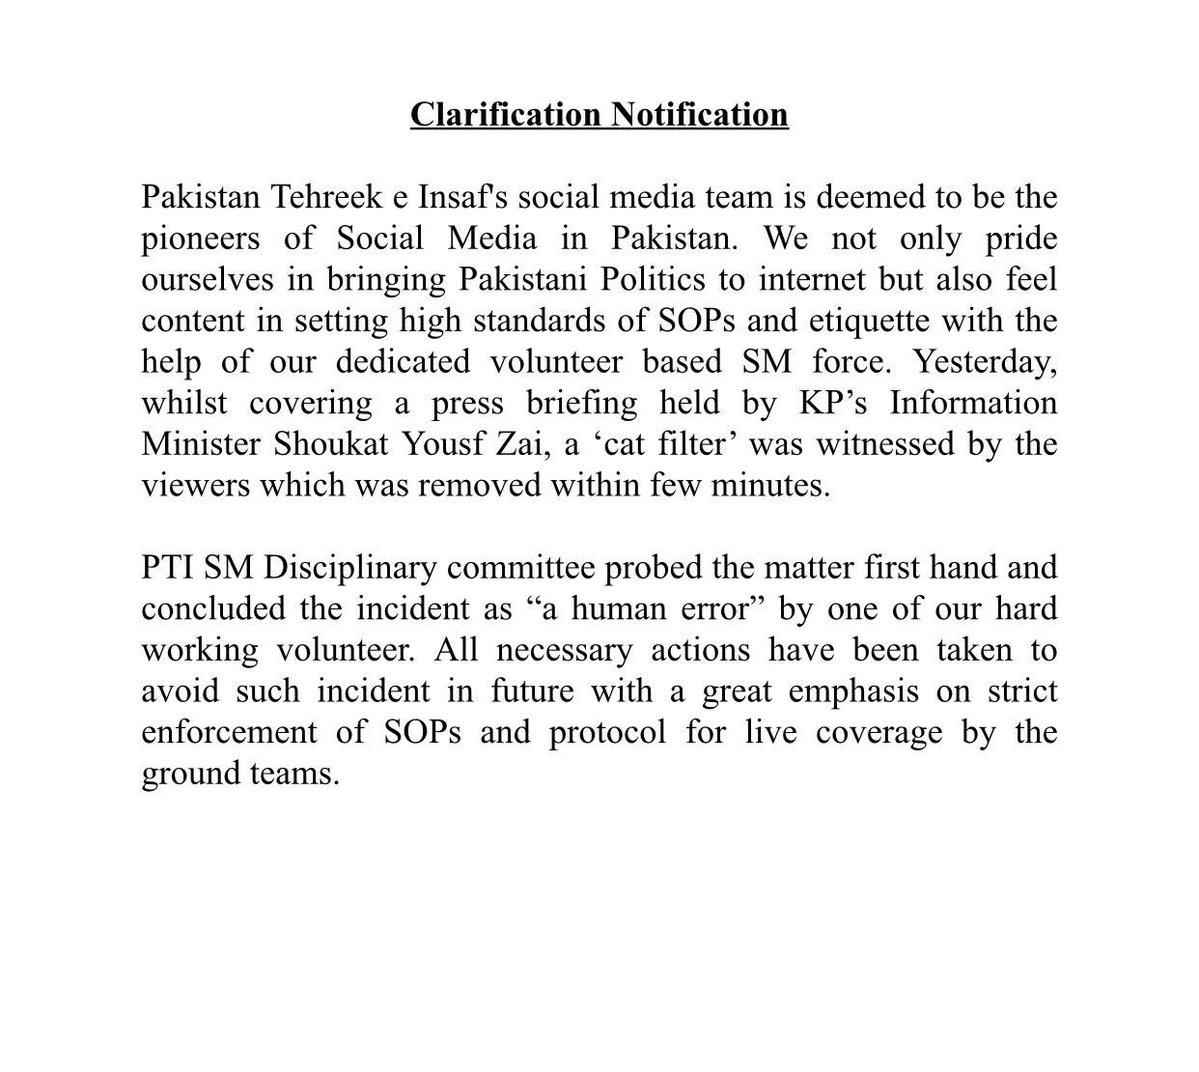 Official statement from the Pakistani government regarding the cat face filter mistake